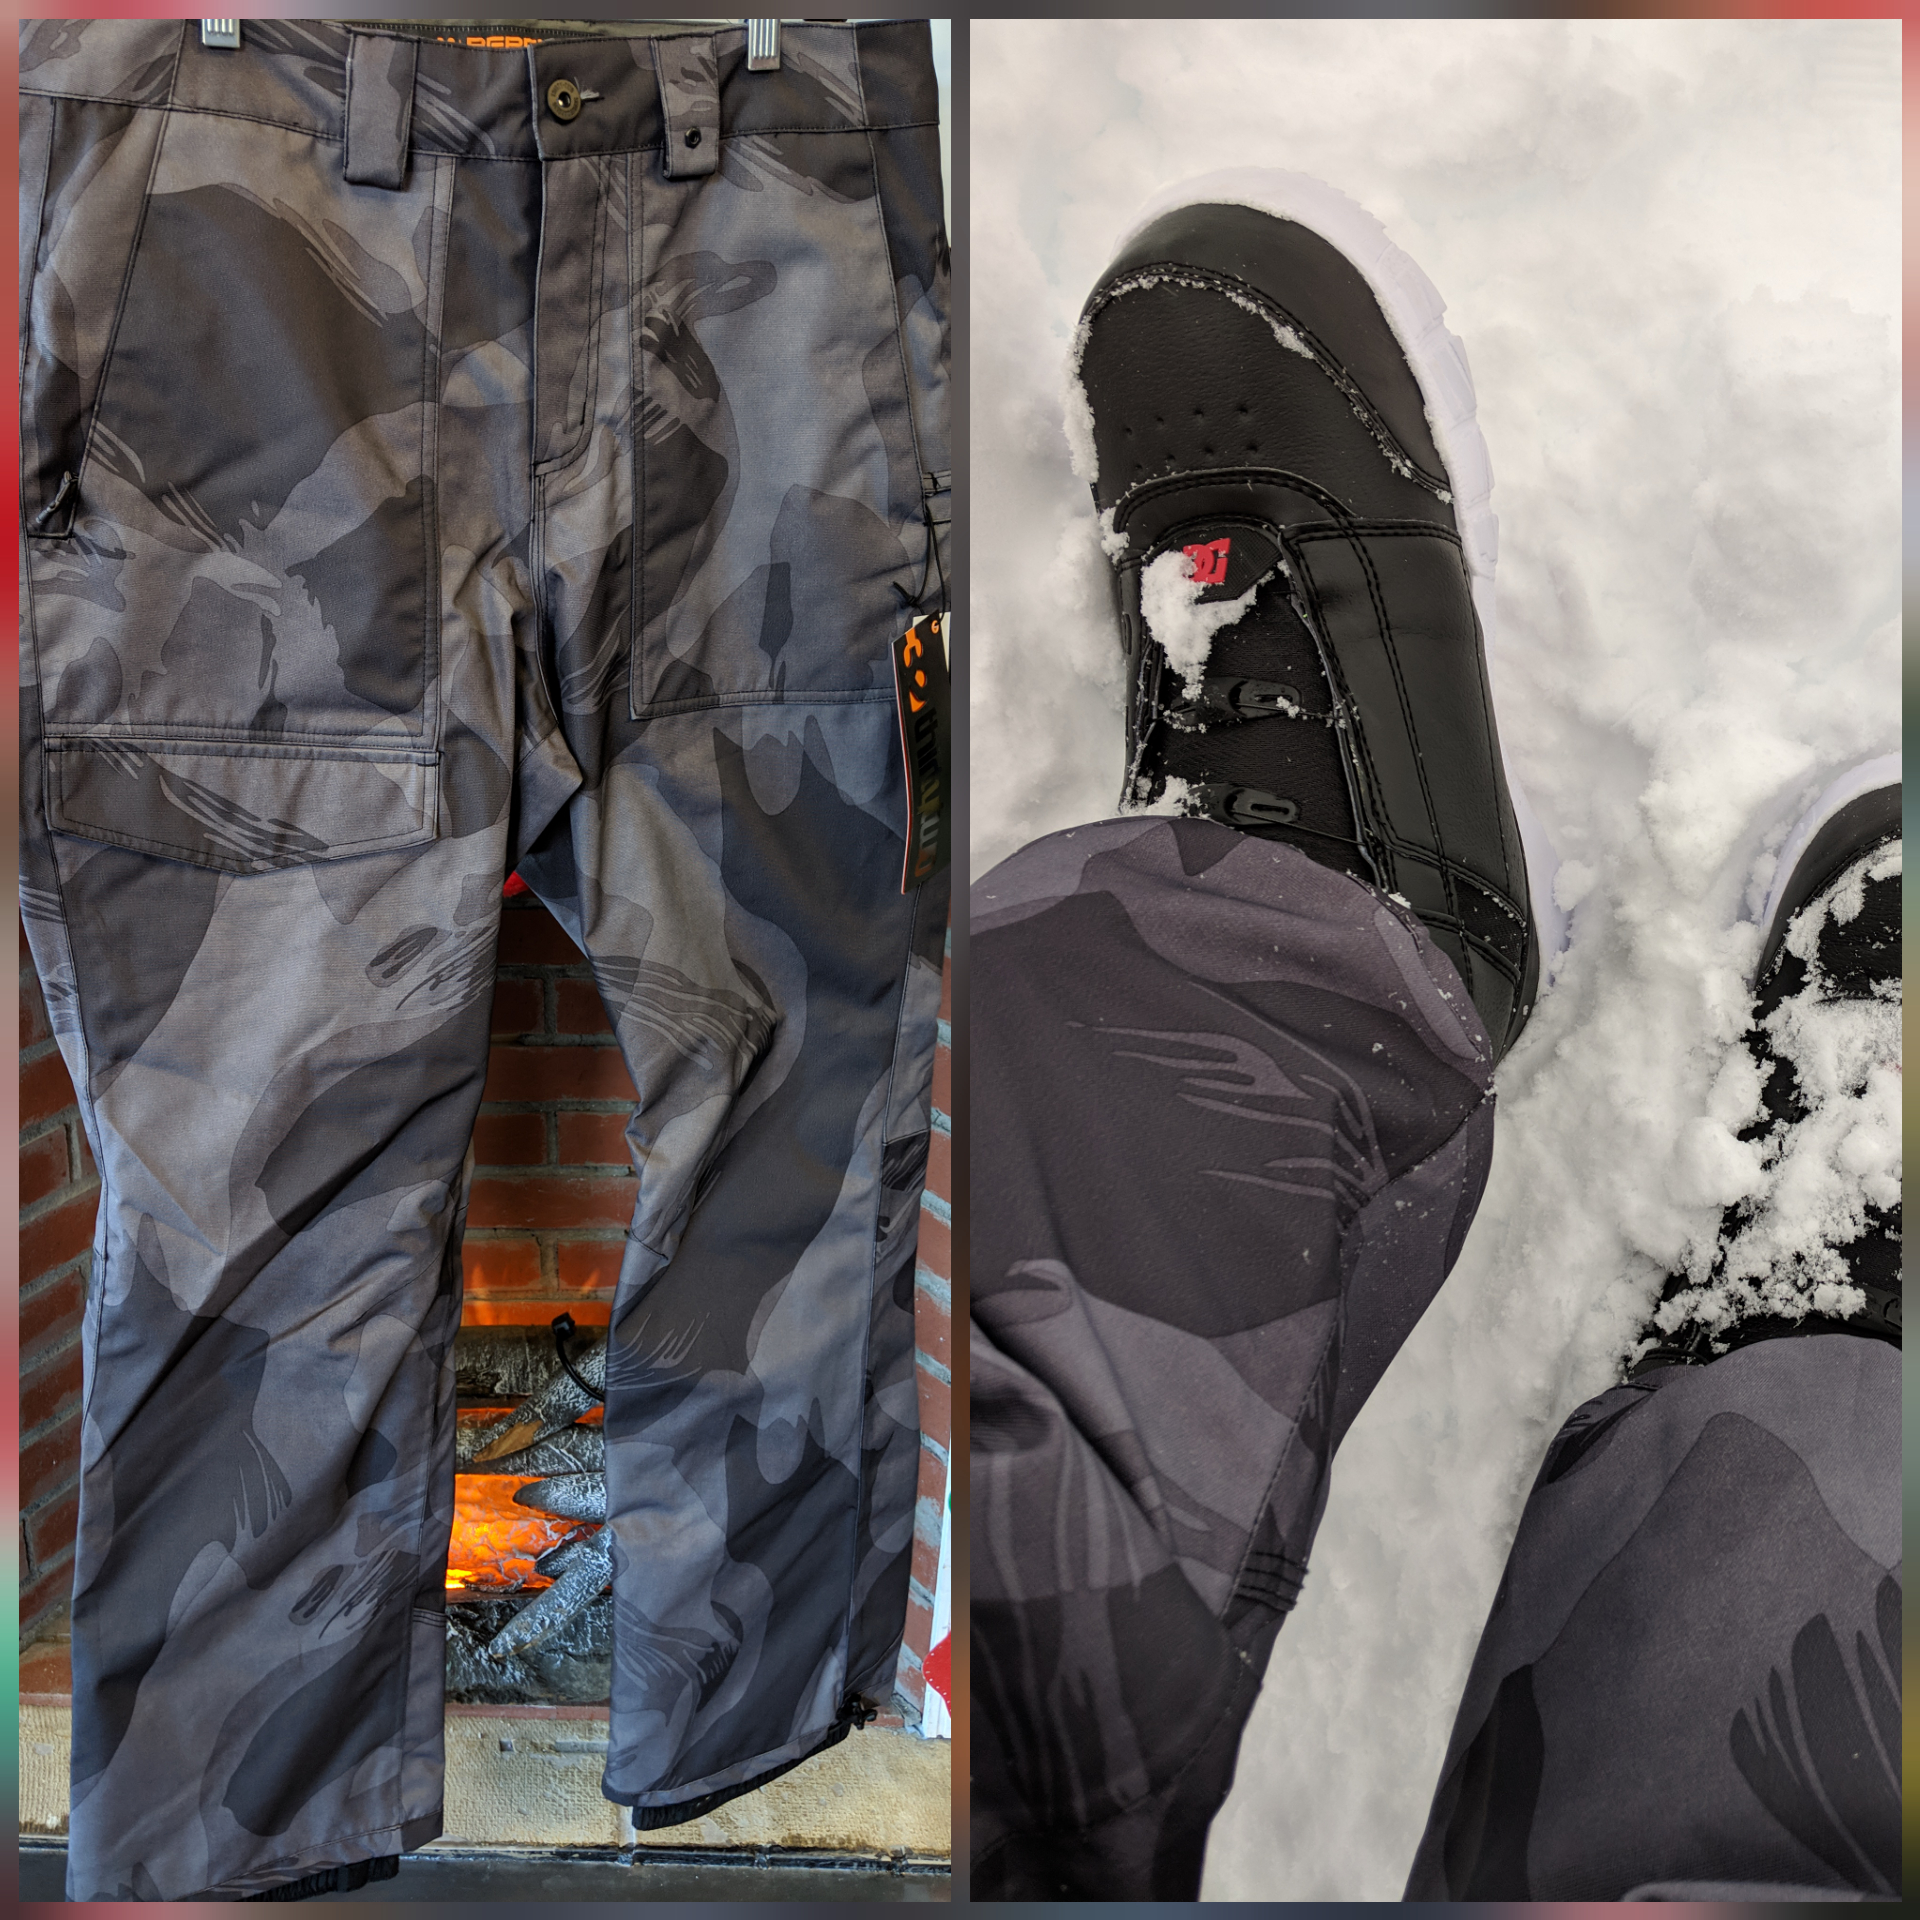 thirtytwo - Pants that sinch so you don't get them caught in your bindings or drag them across the lot.